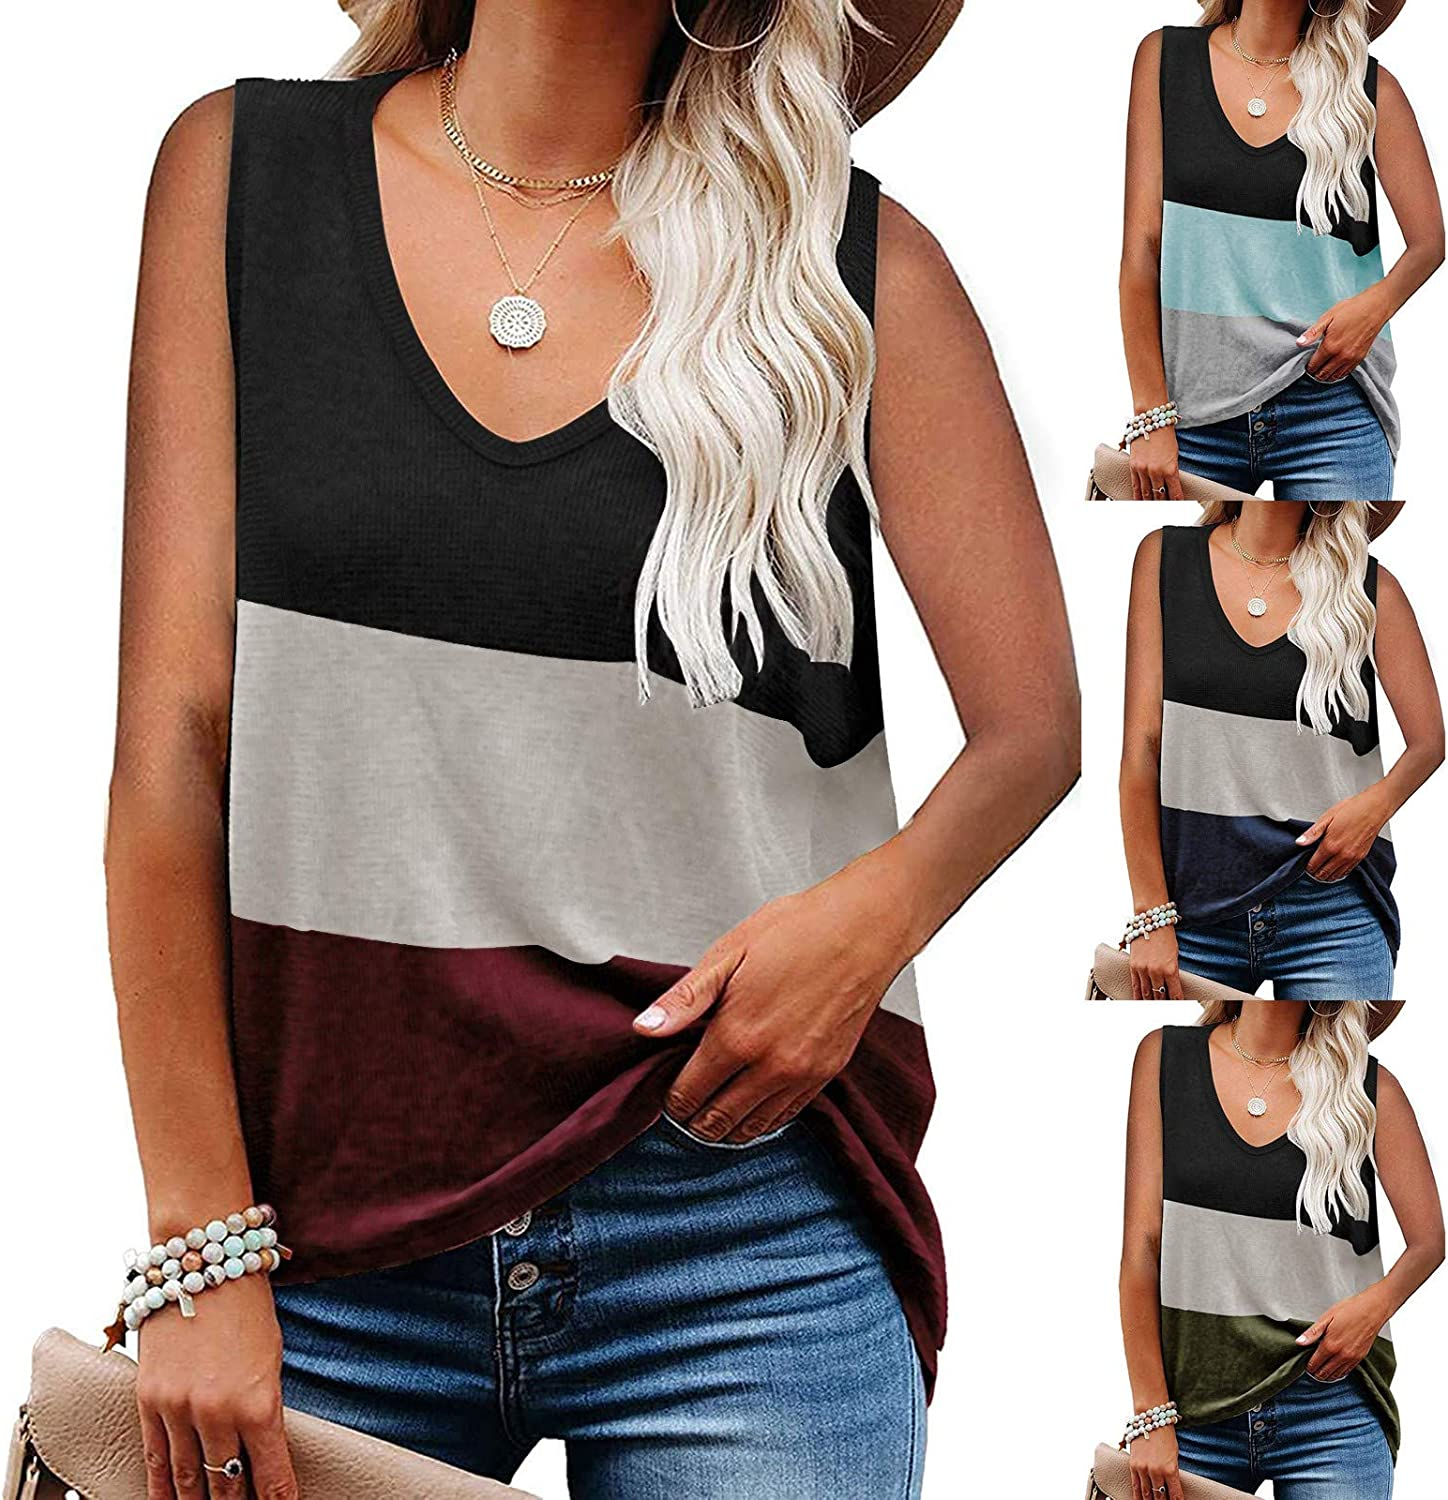 GKASA Womens Camisole Tank Tops Stitching Collision Colorful Vest V-Neck Tee Fashion Casual Loose Fit Blouse